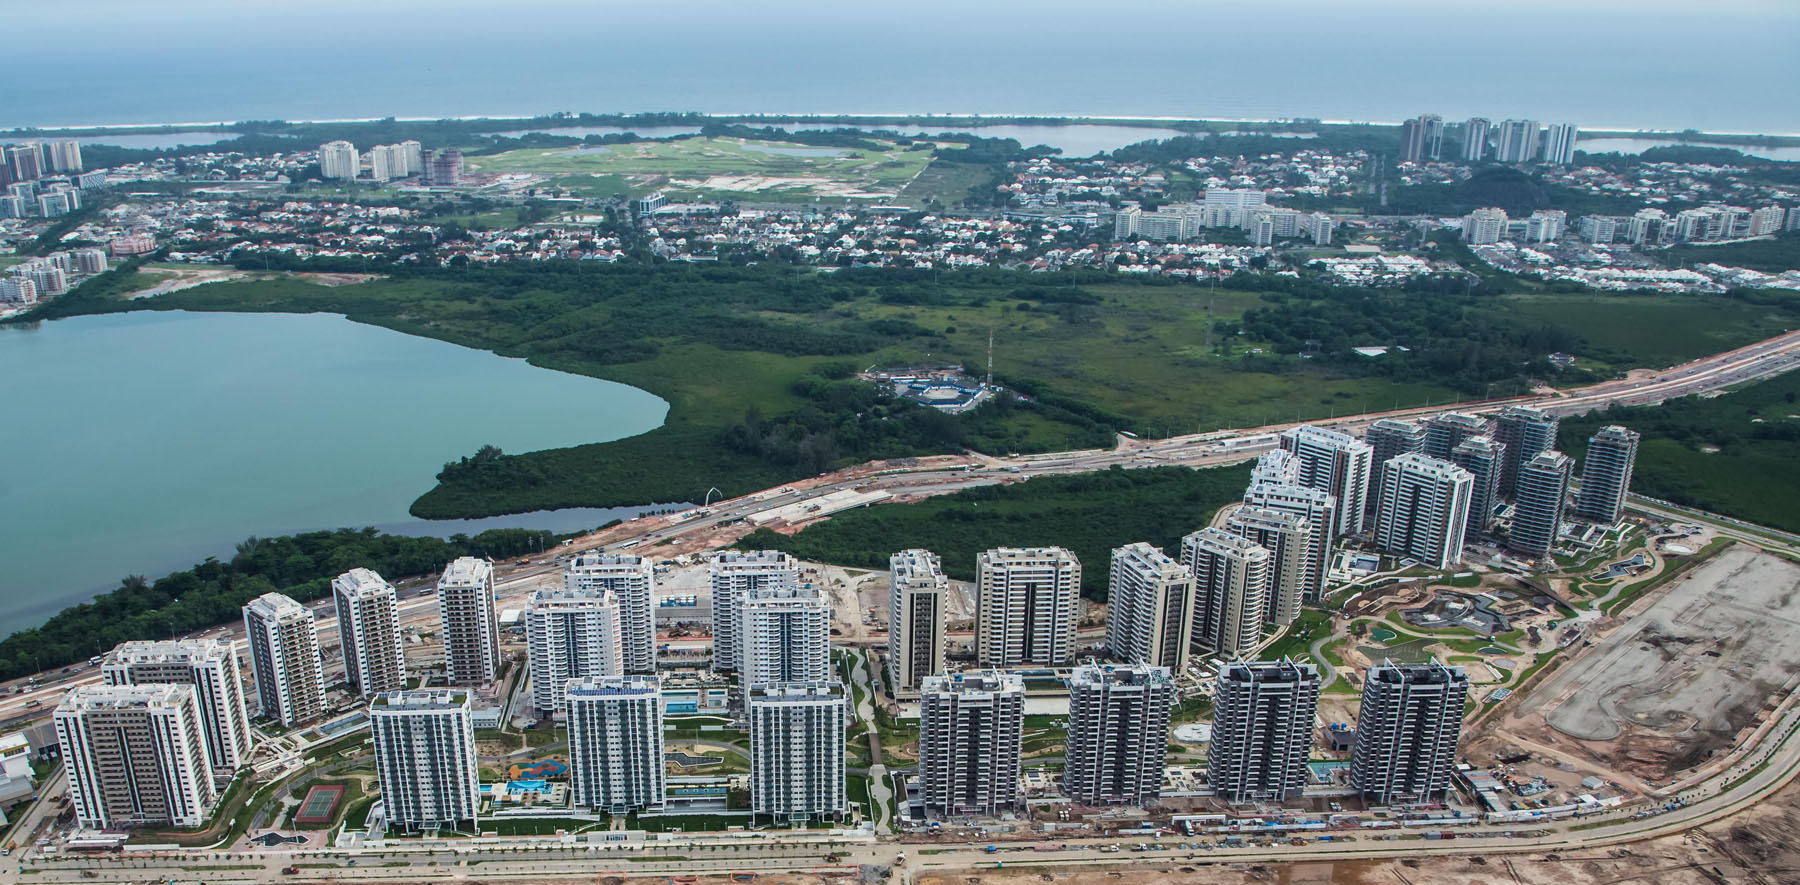 Aerial View of Rio 2016 Olympic Village